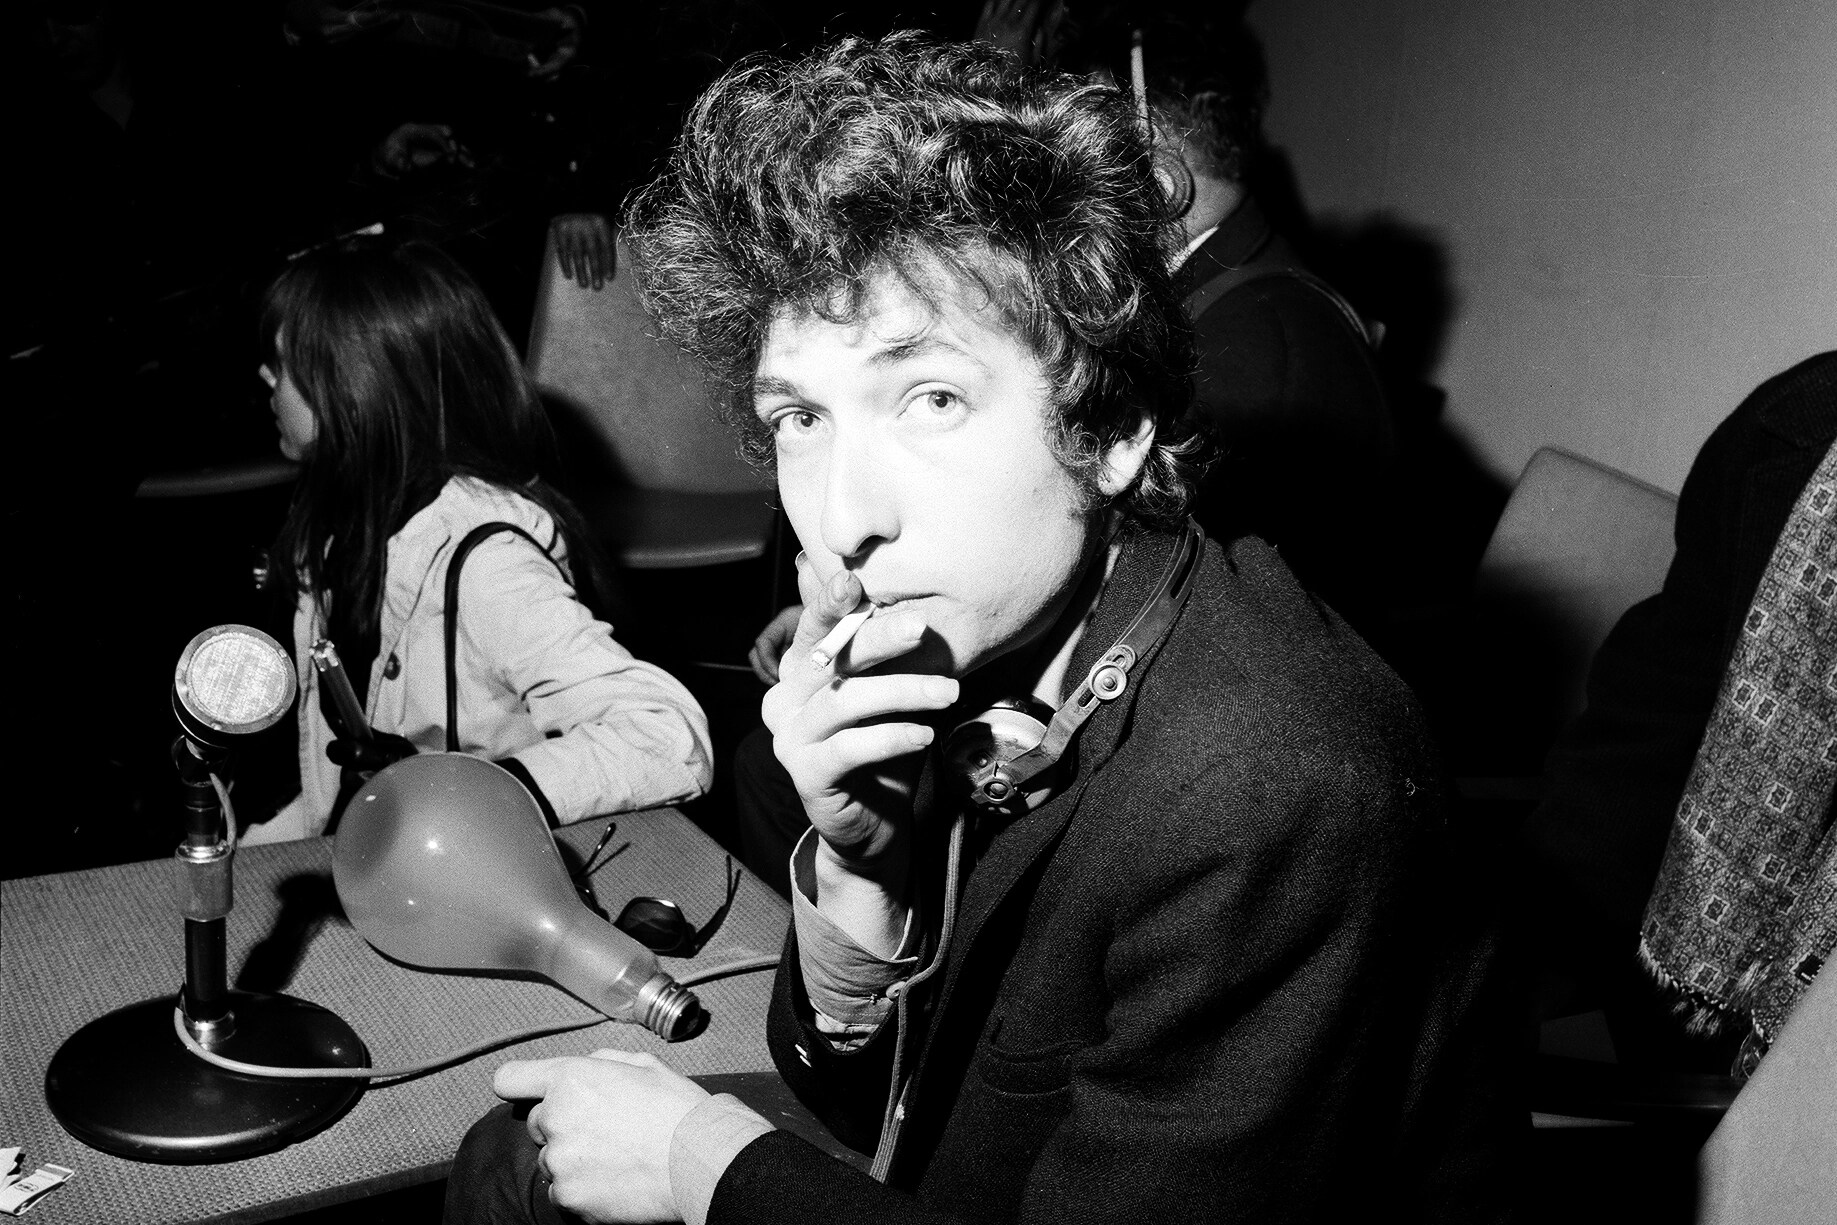 Bob Dylan 1960s Live Rarities Collection Gets Wide Release